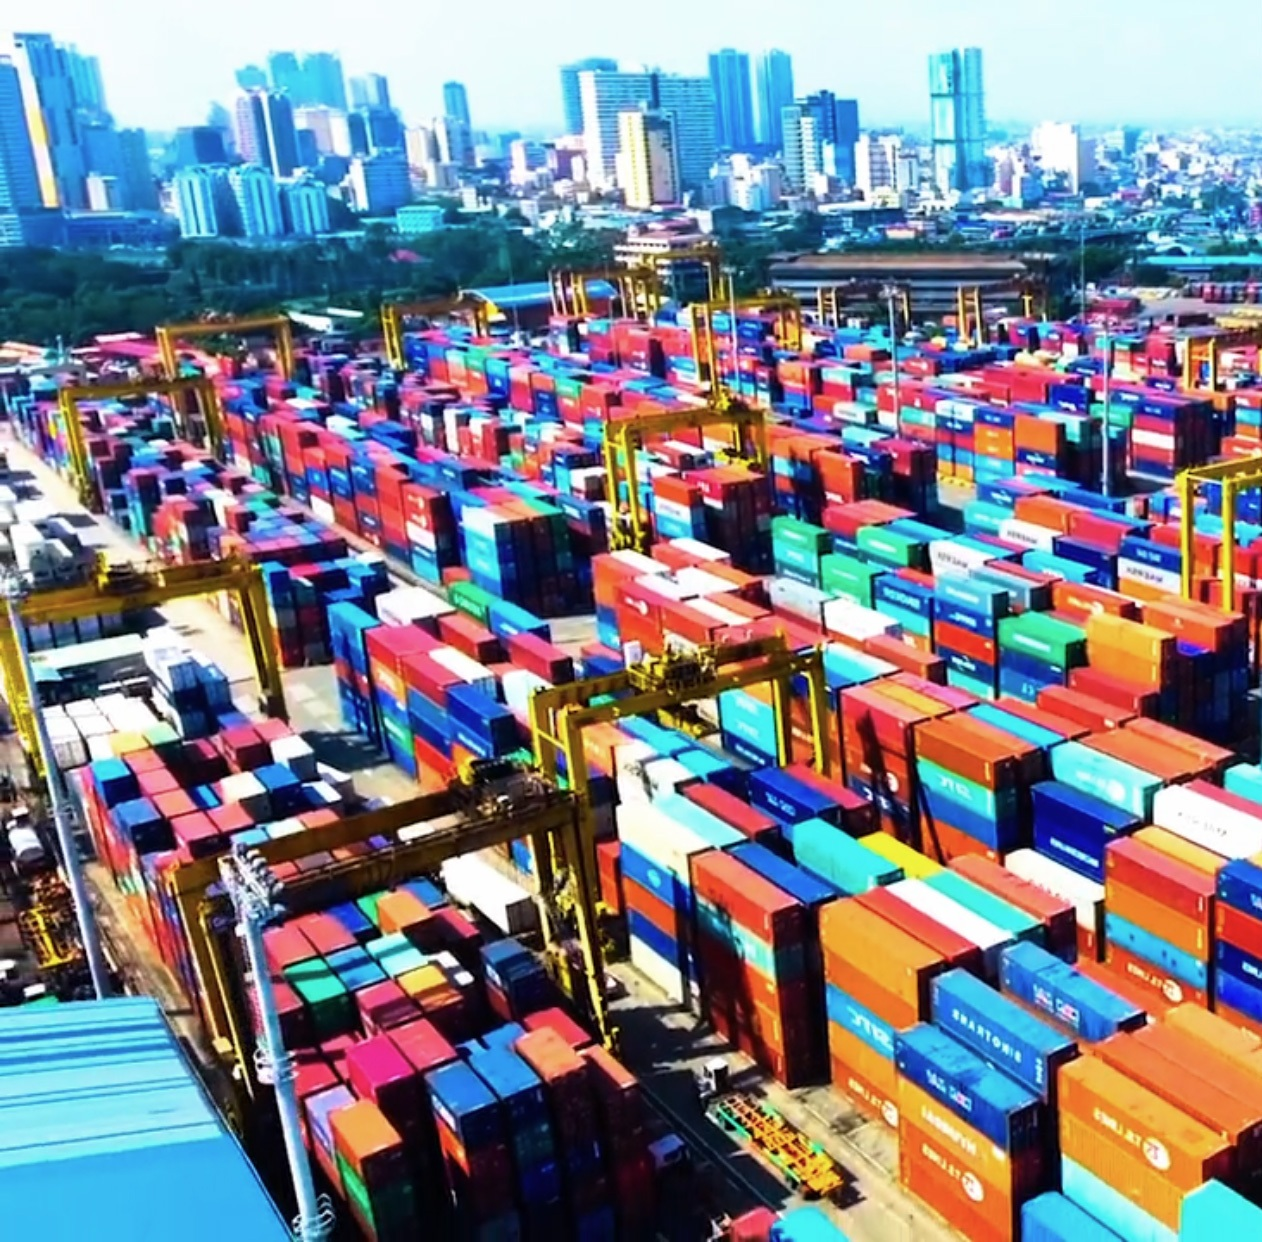 CONTAINER_YARD_IMAGE.jpg